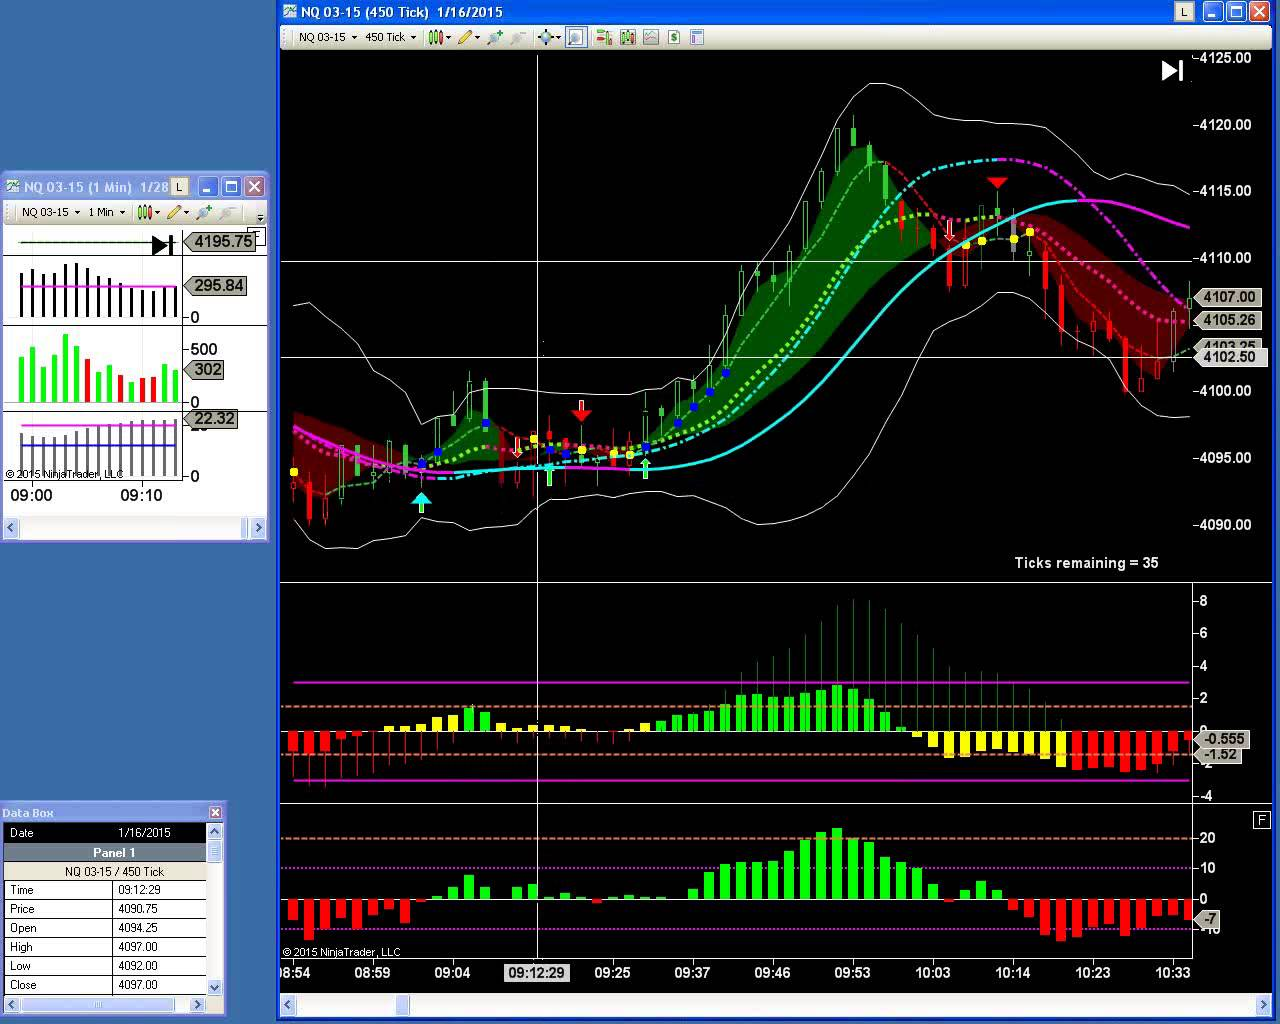 DecisionBar Trading Software issues accurate Buy and Sell signals in real-time. Trade any market. Perfect for day-traders swing-traders and investors.